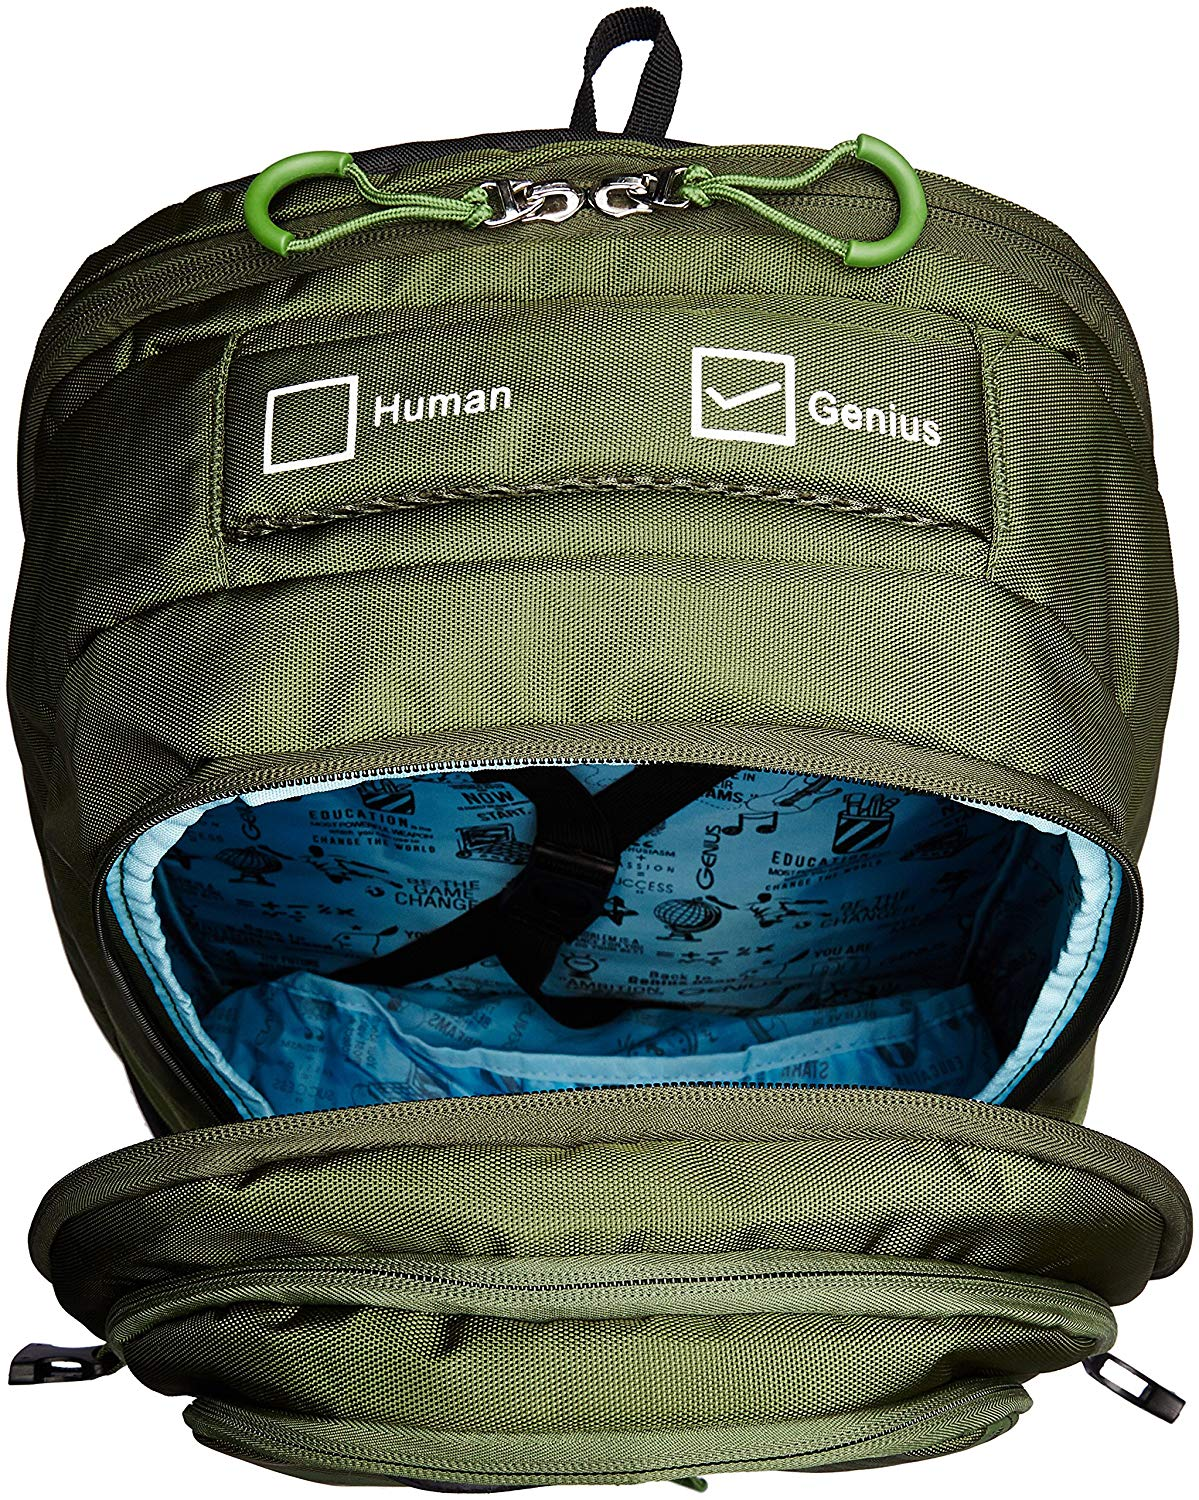 Genius Nylon 39 Ltrs Green Trekking Backpack (Inferno Green 52) - Bagaholics Gift